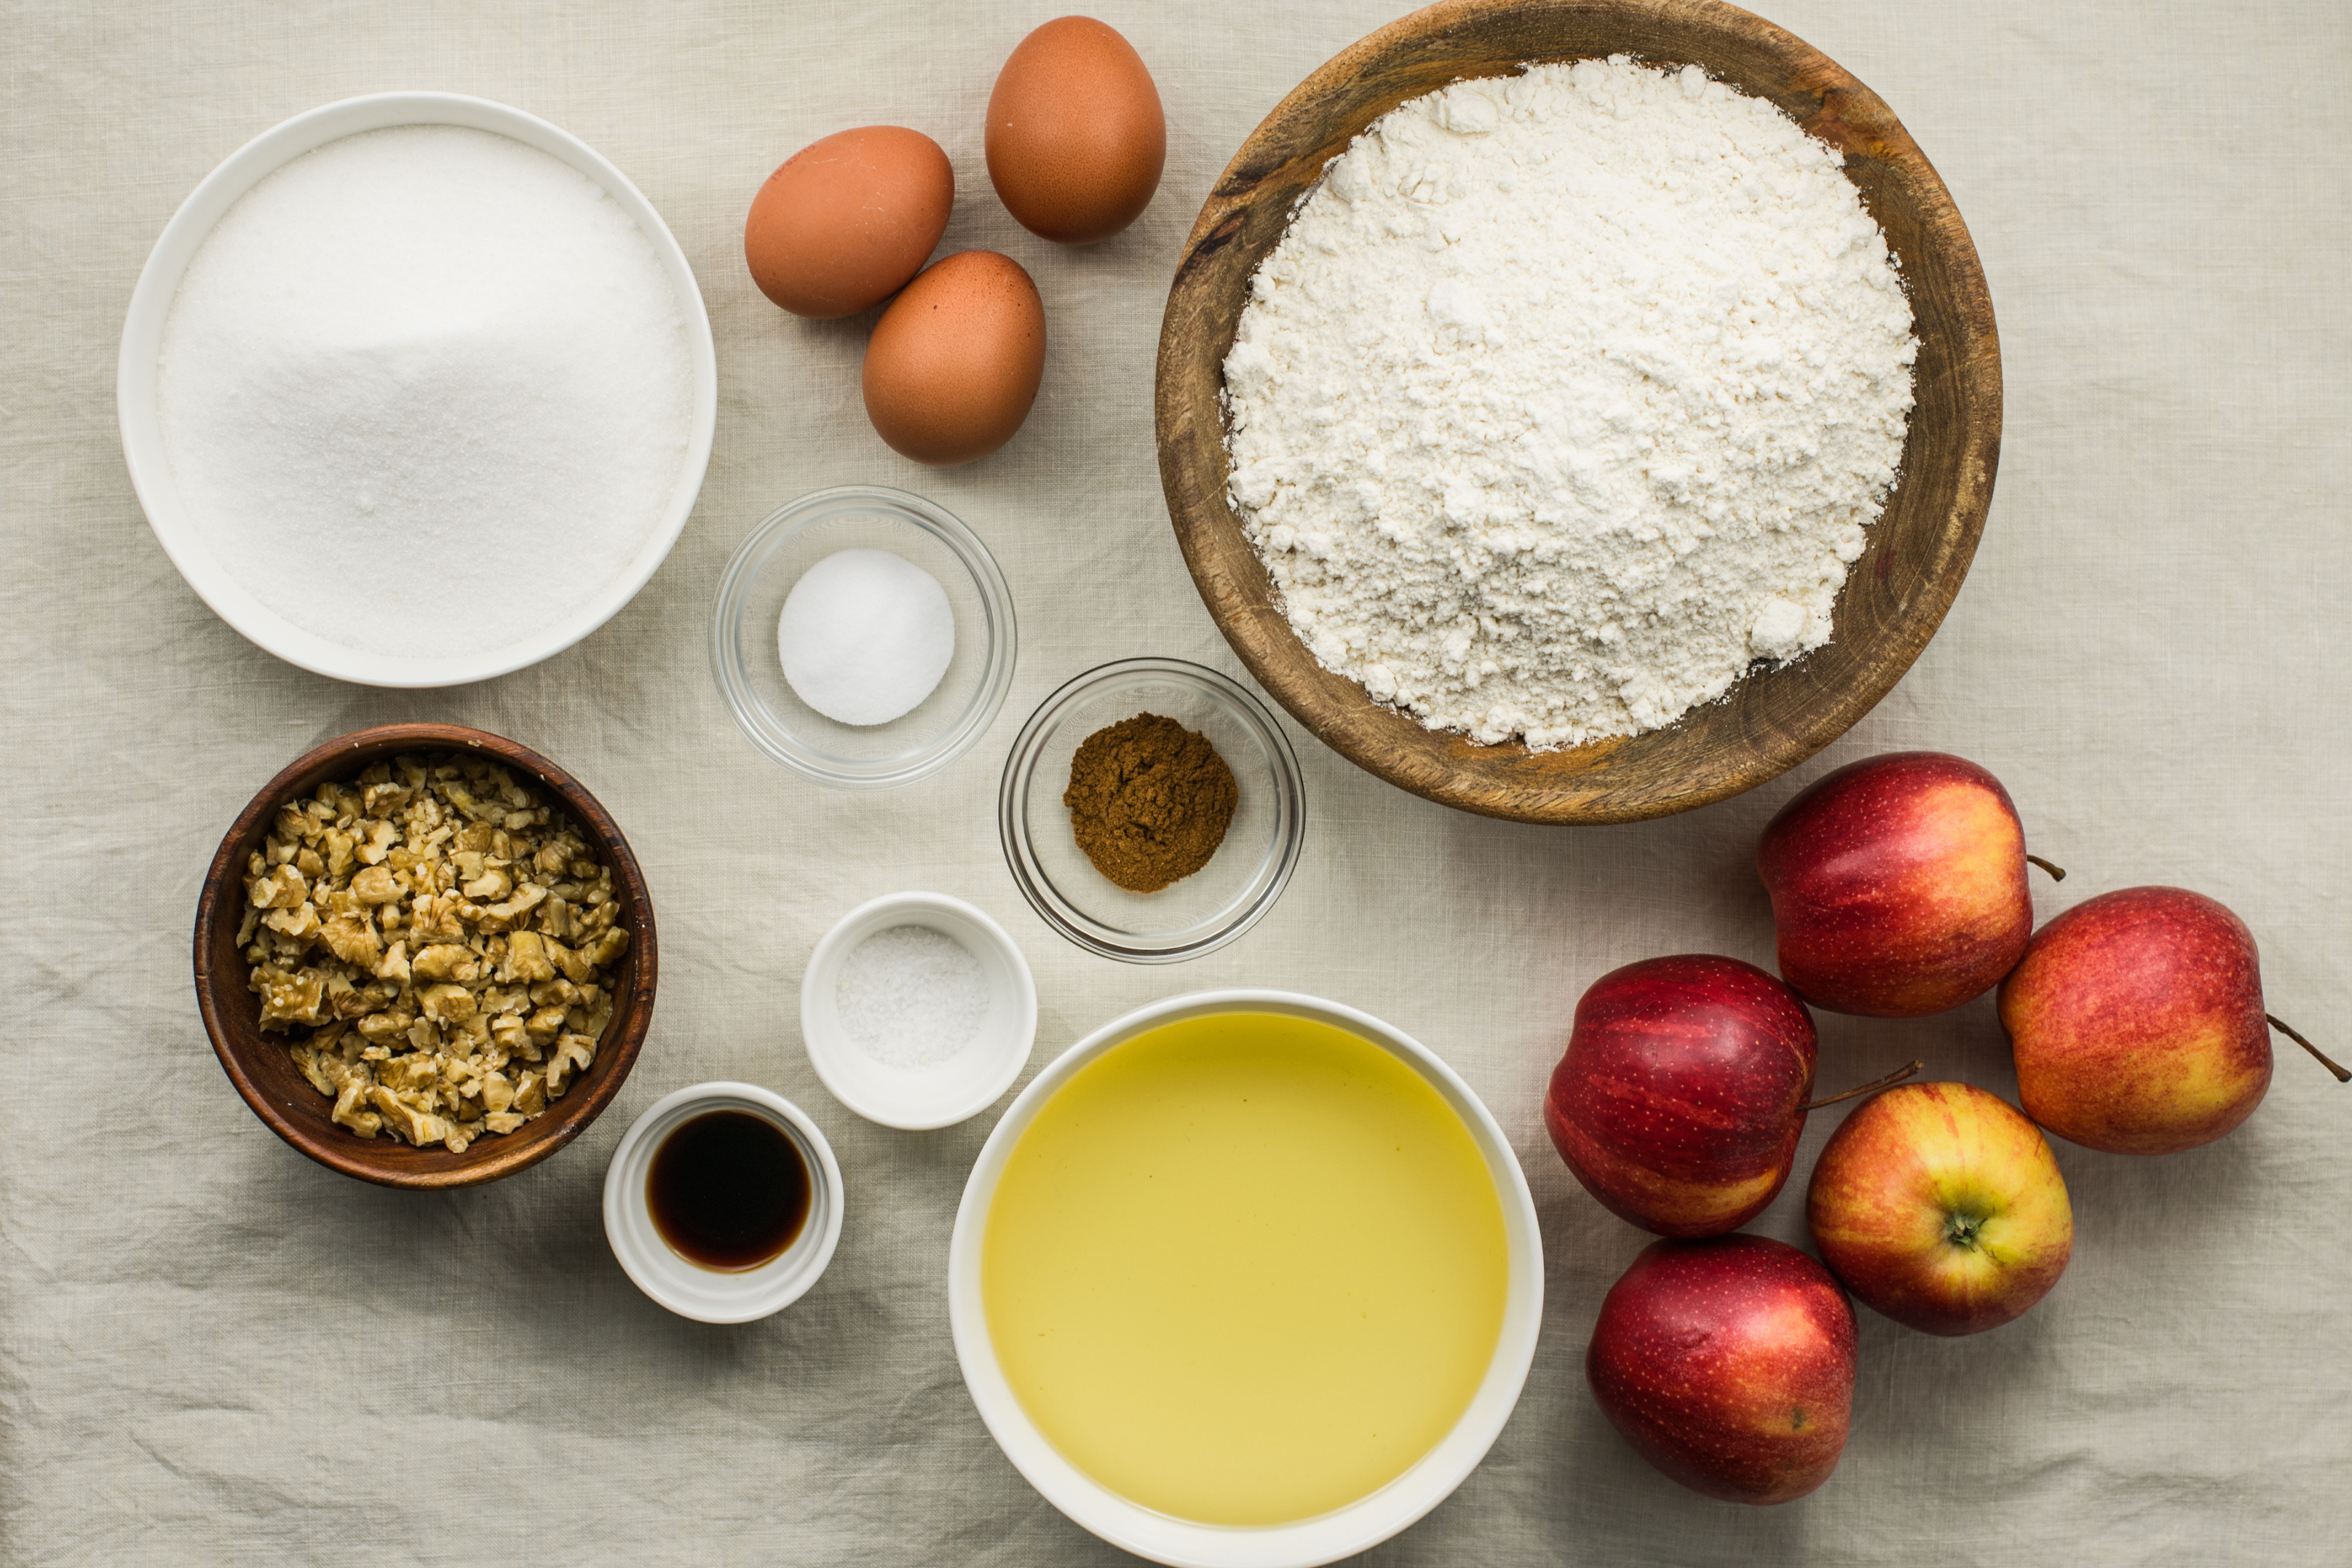 Ingredients for warm apple cake